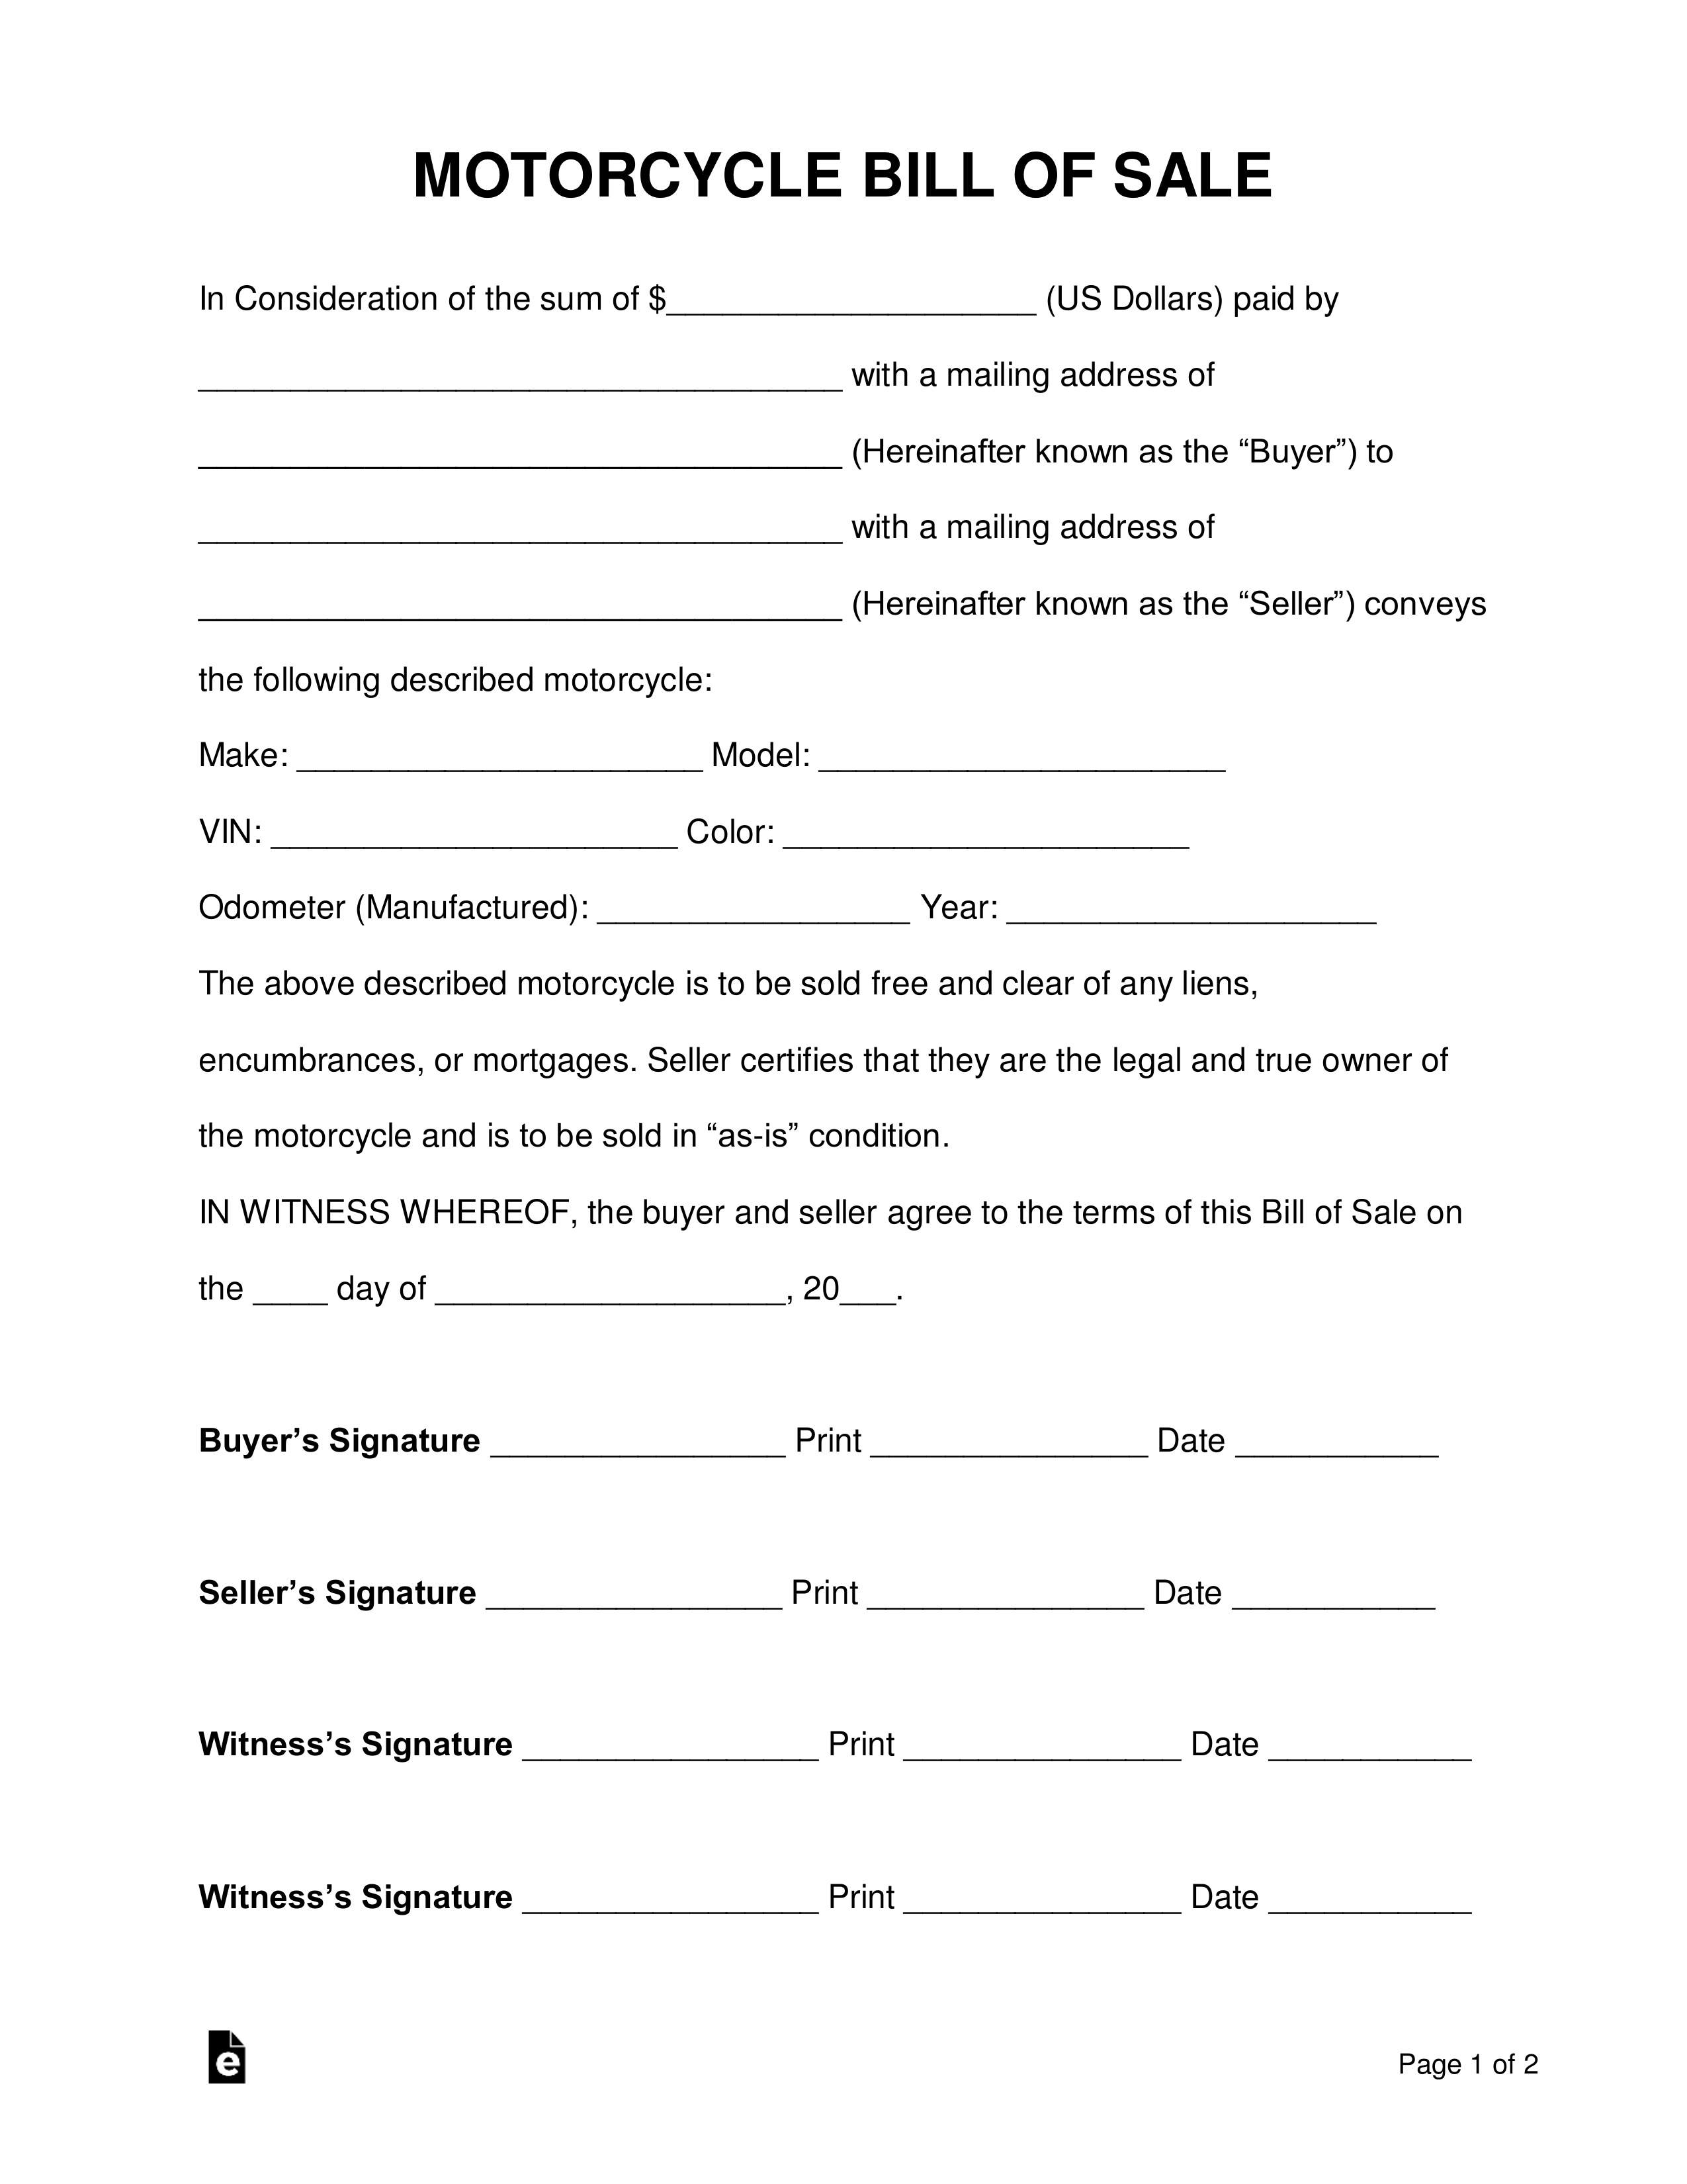 Free Motorcycle Bill Of Sale Form - Pdf   Word   Eforms